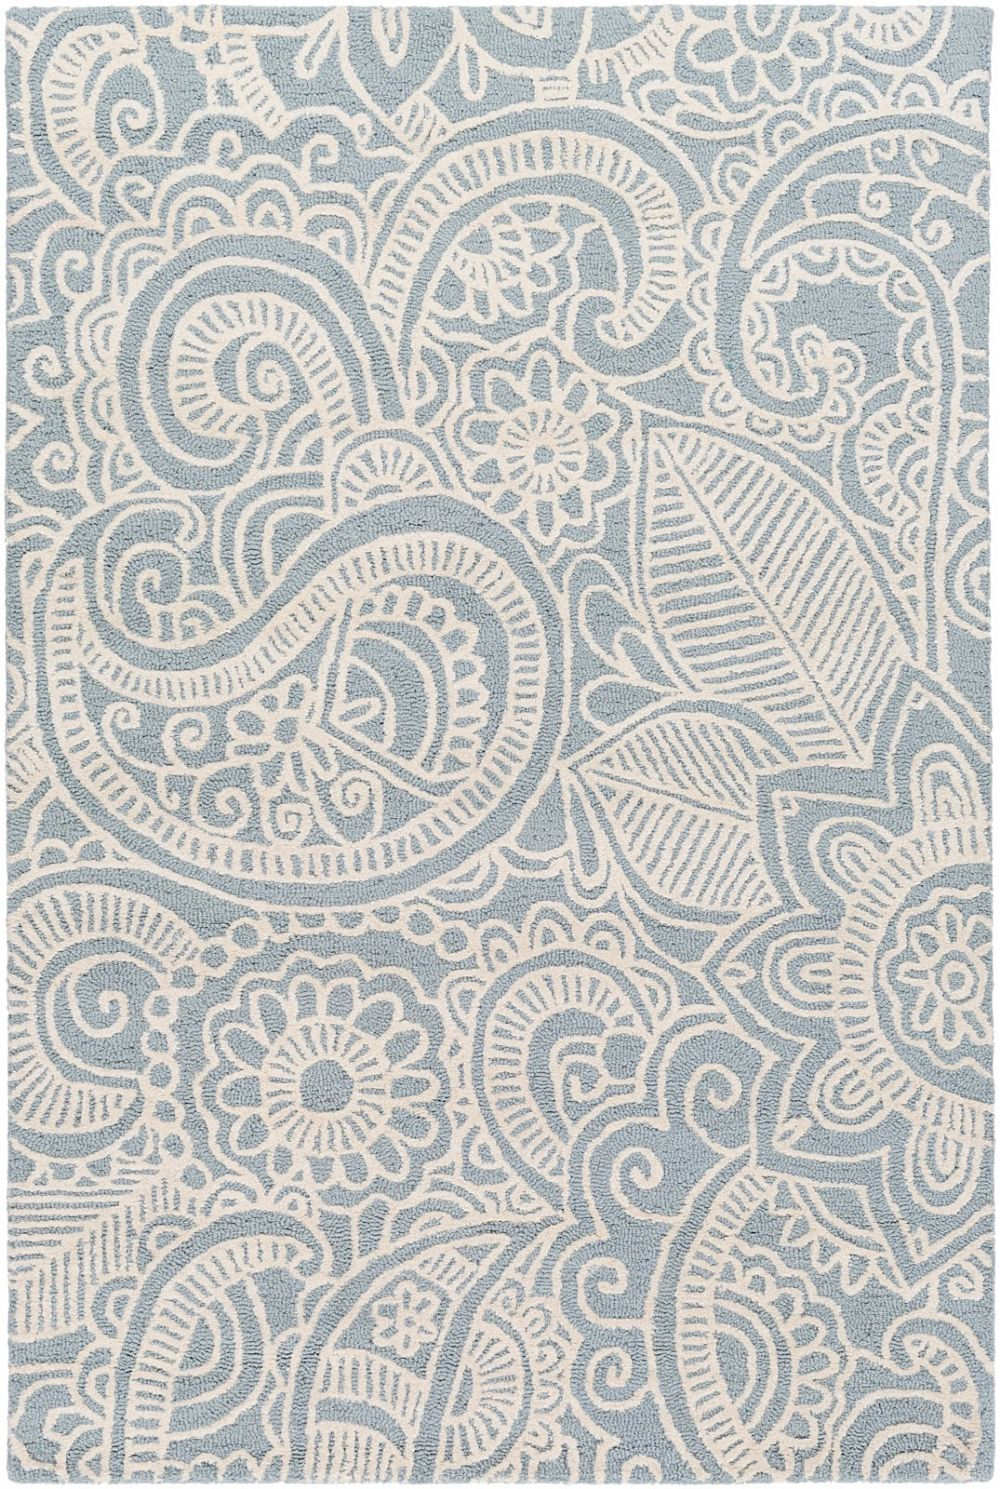 rugpal zealand country & floral area rug collection